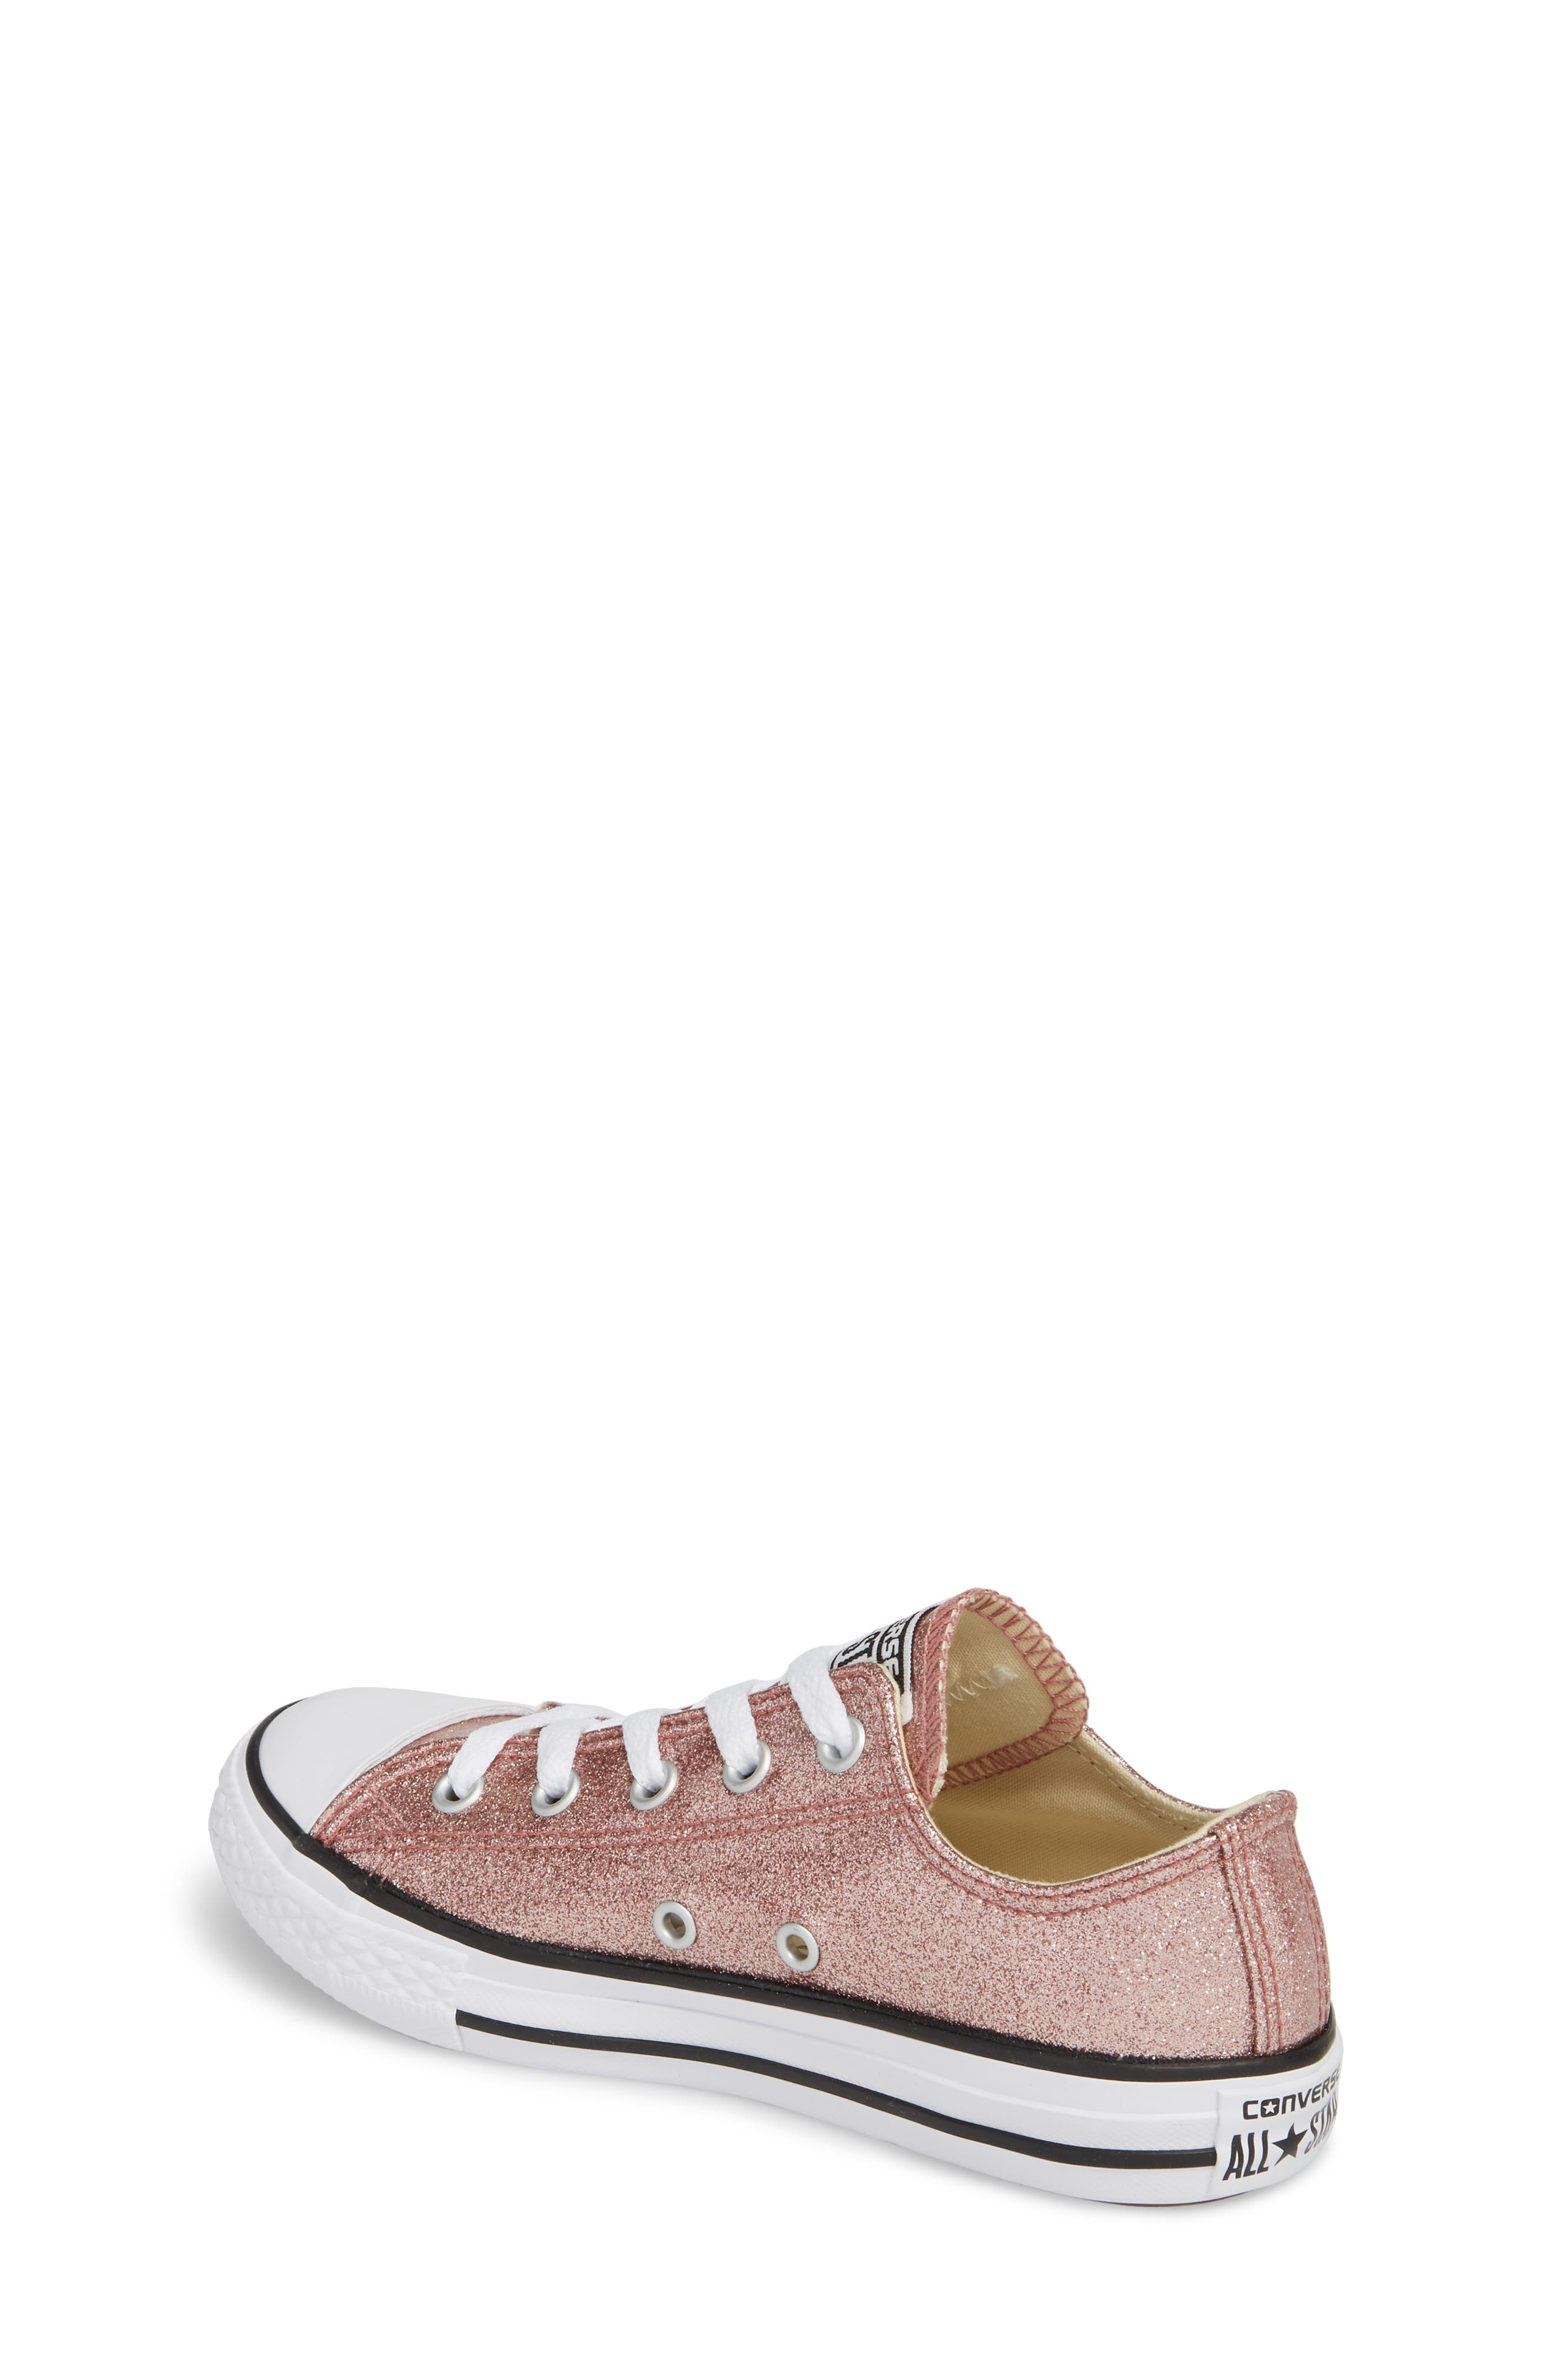 Chuck Taylor<sup>®</sup> All Star<sup>®</sup> Glitter Slip-On,                             Alternate thumbnail 2, color,                             220